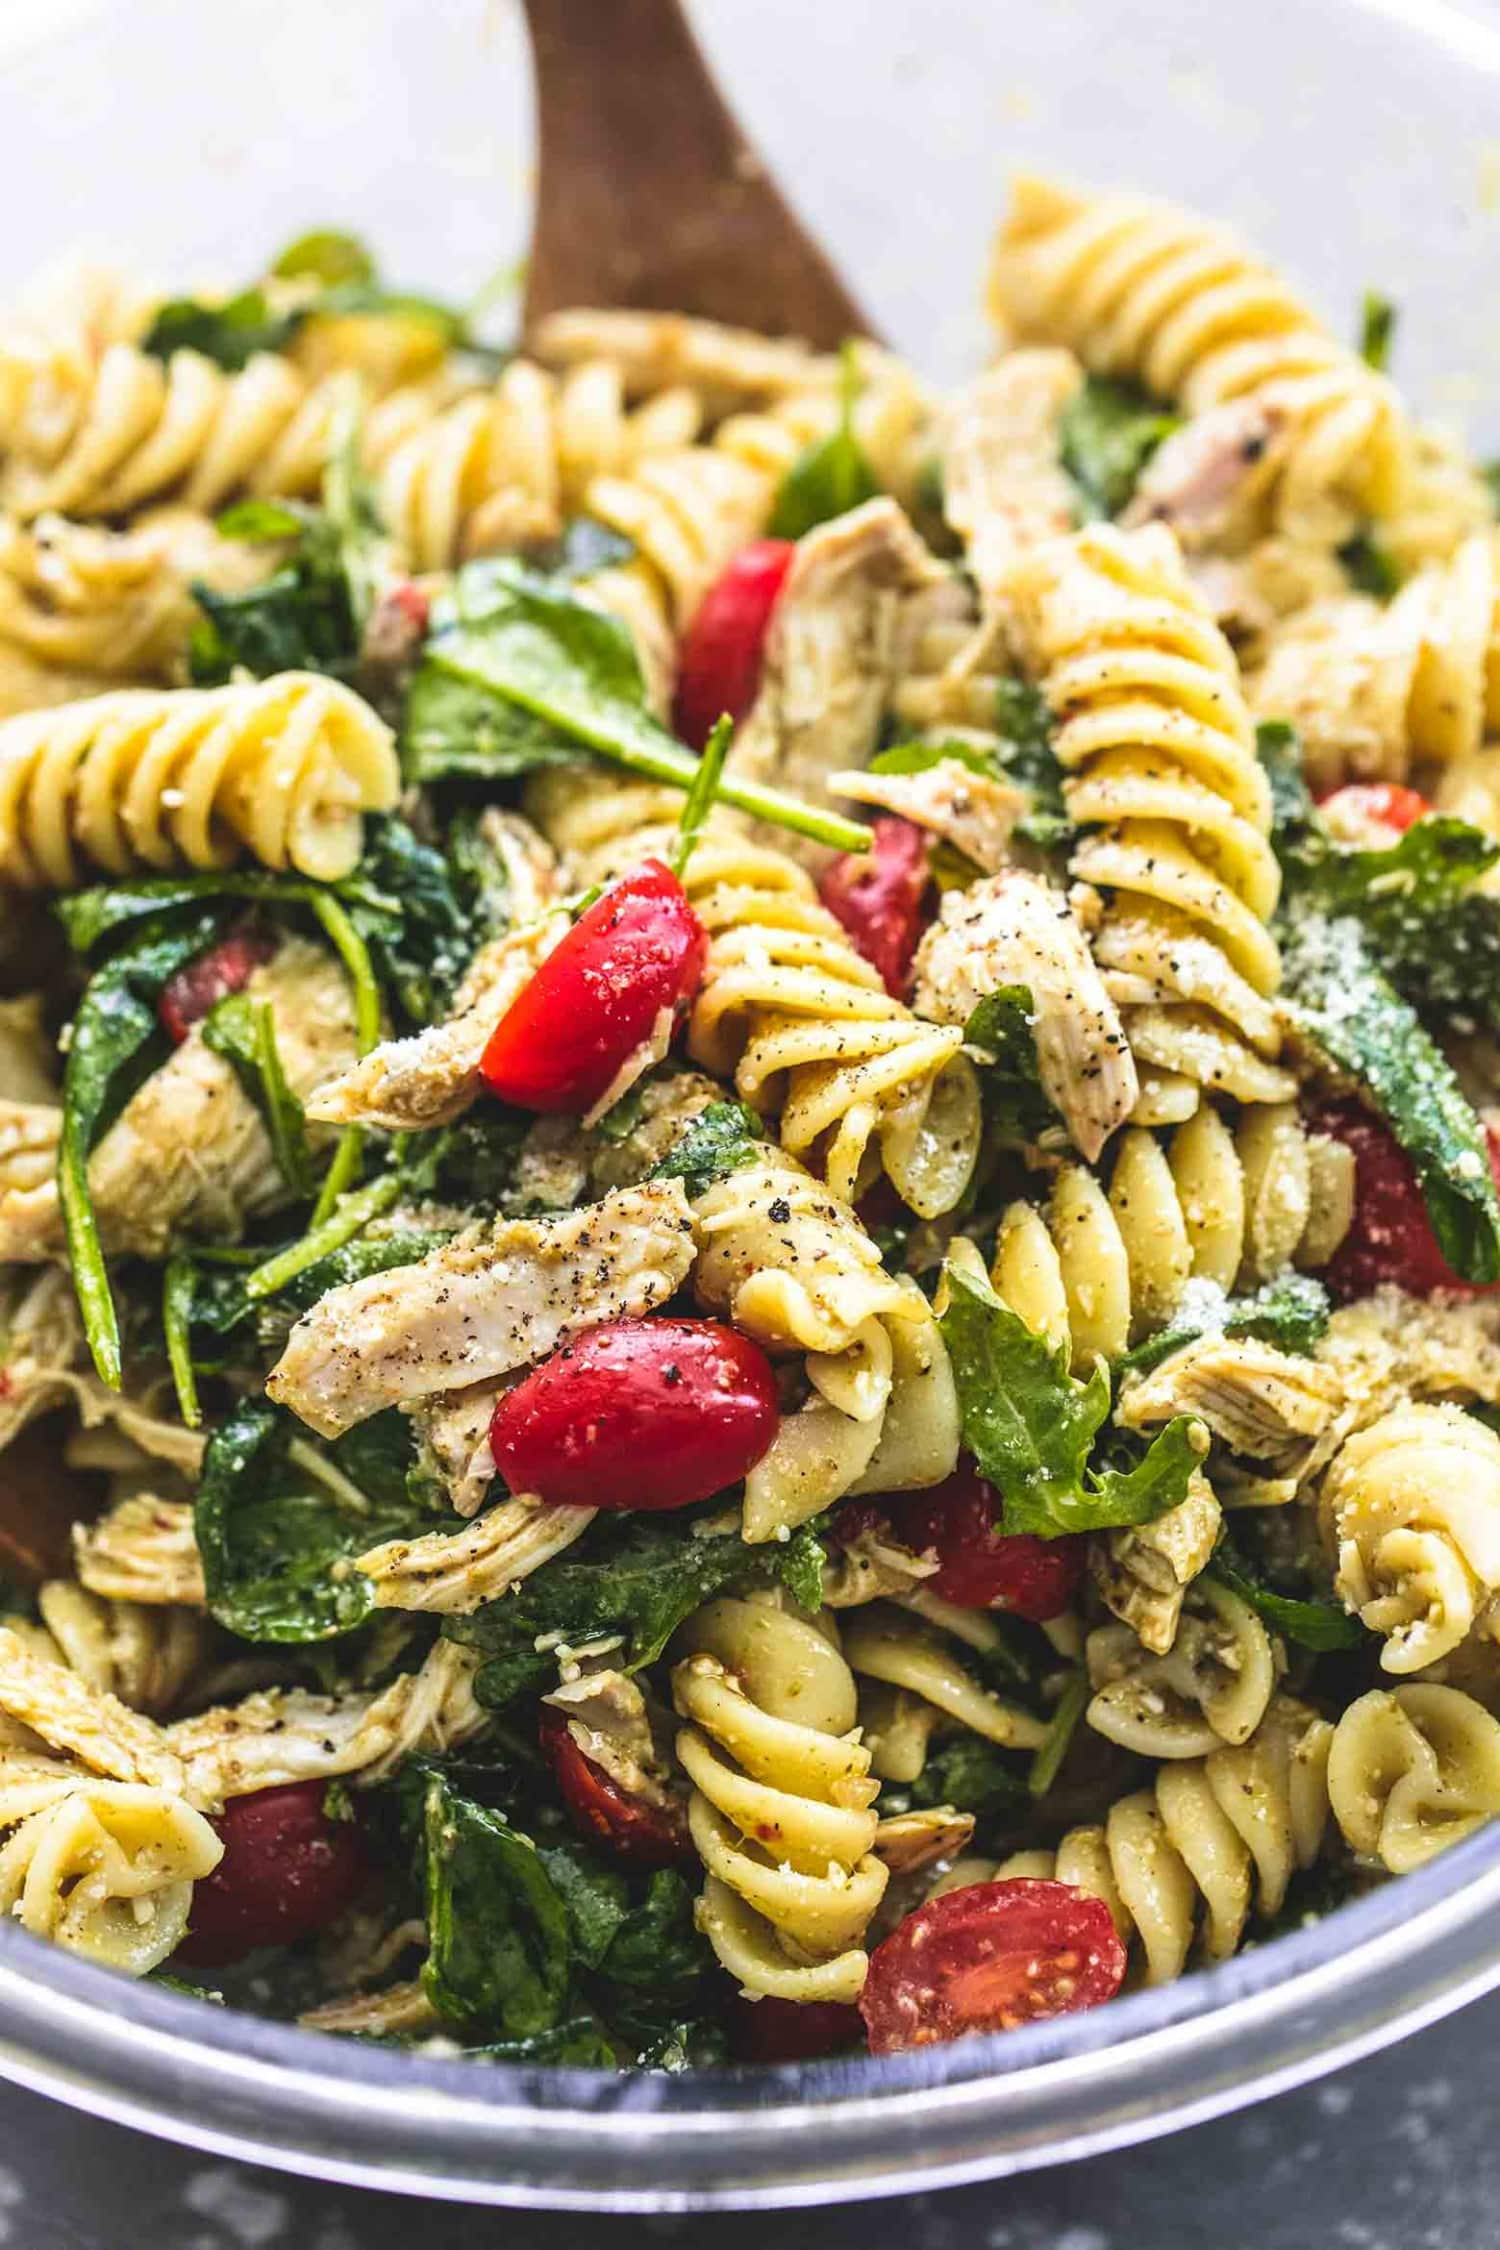 This Pesto Chicken Pasta Salad Could Not Be Easier to Make